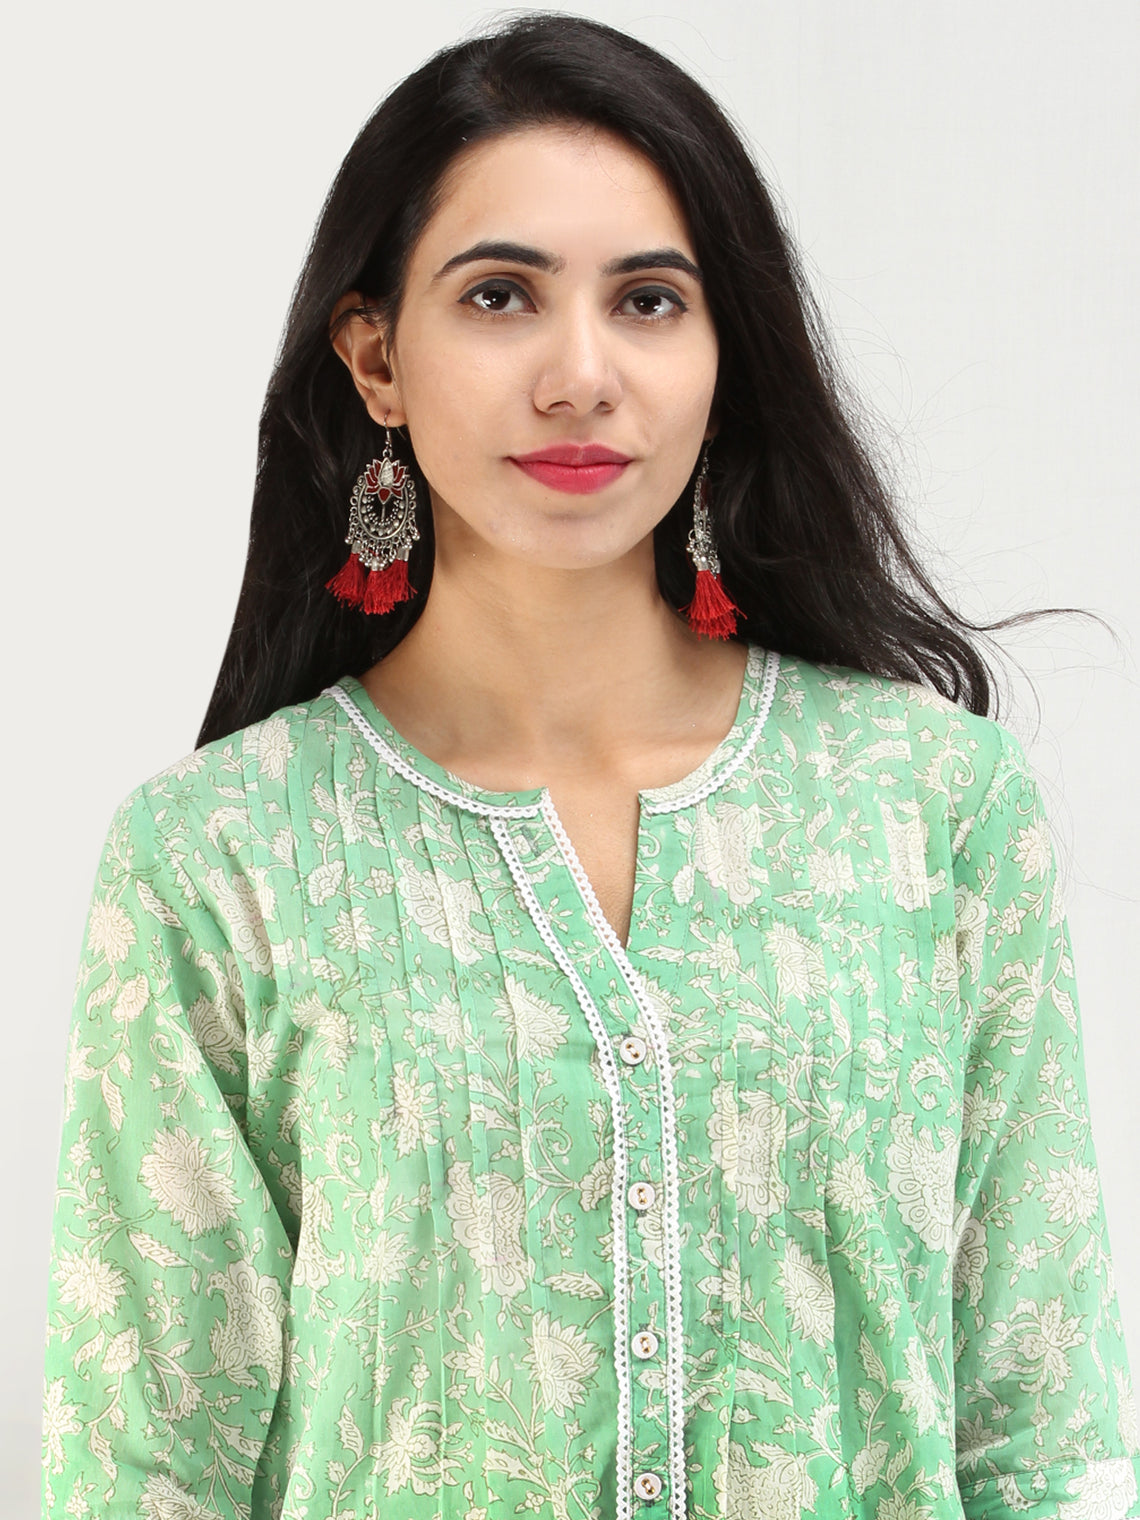 Rangrez Mehtab - Cotton Top - T74F2128